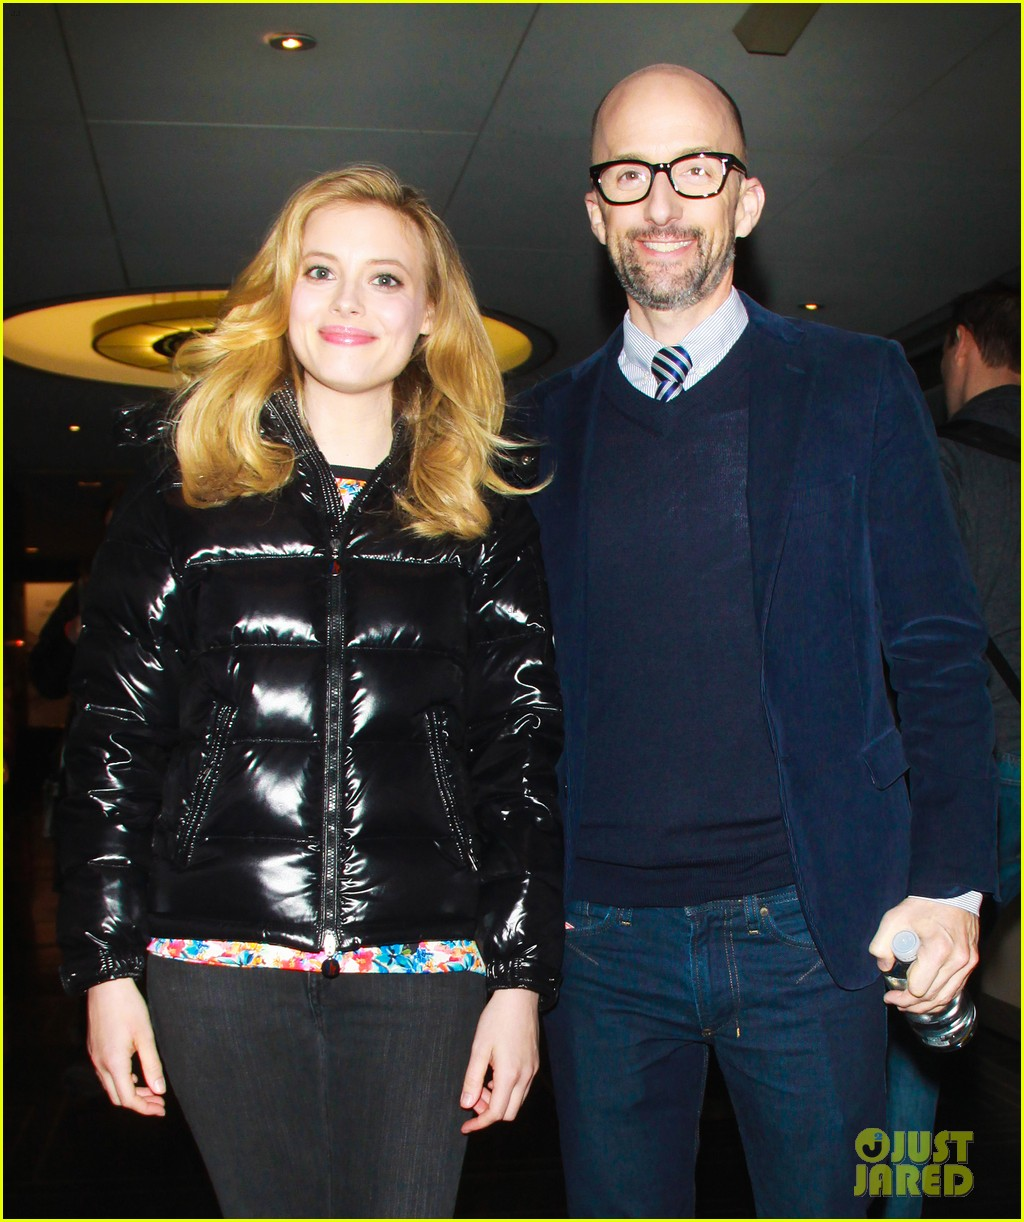 gillian jacobs jim rash community season 5 premieres tonight on nbc 04